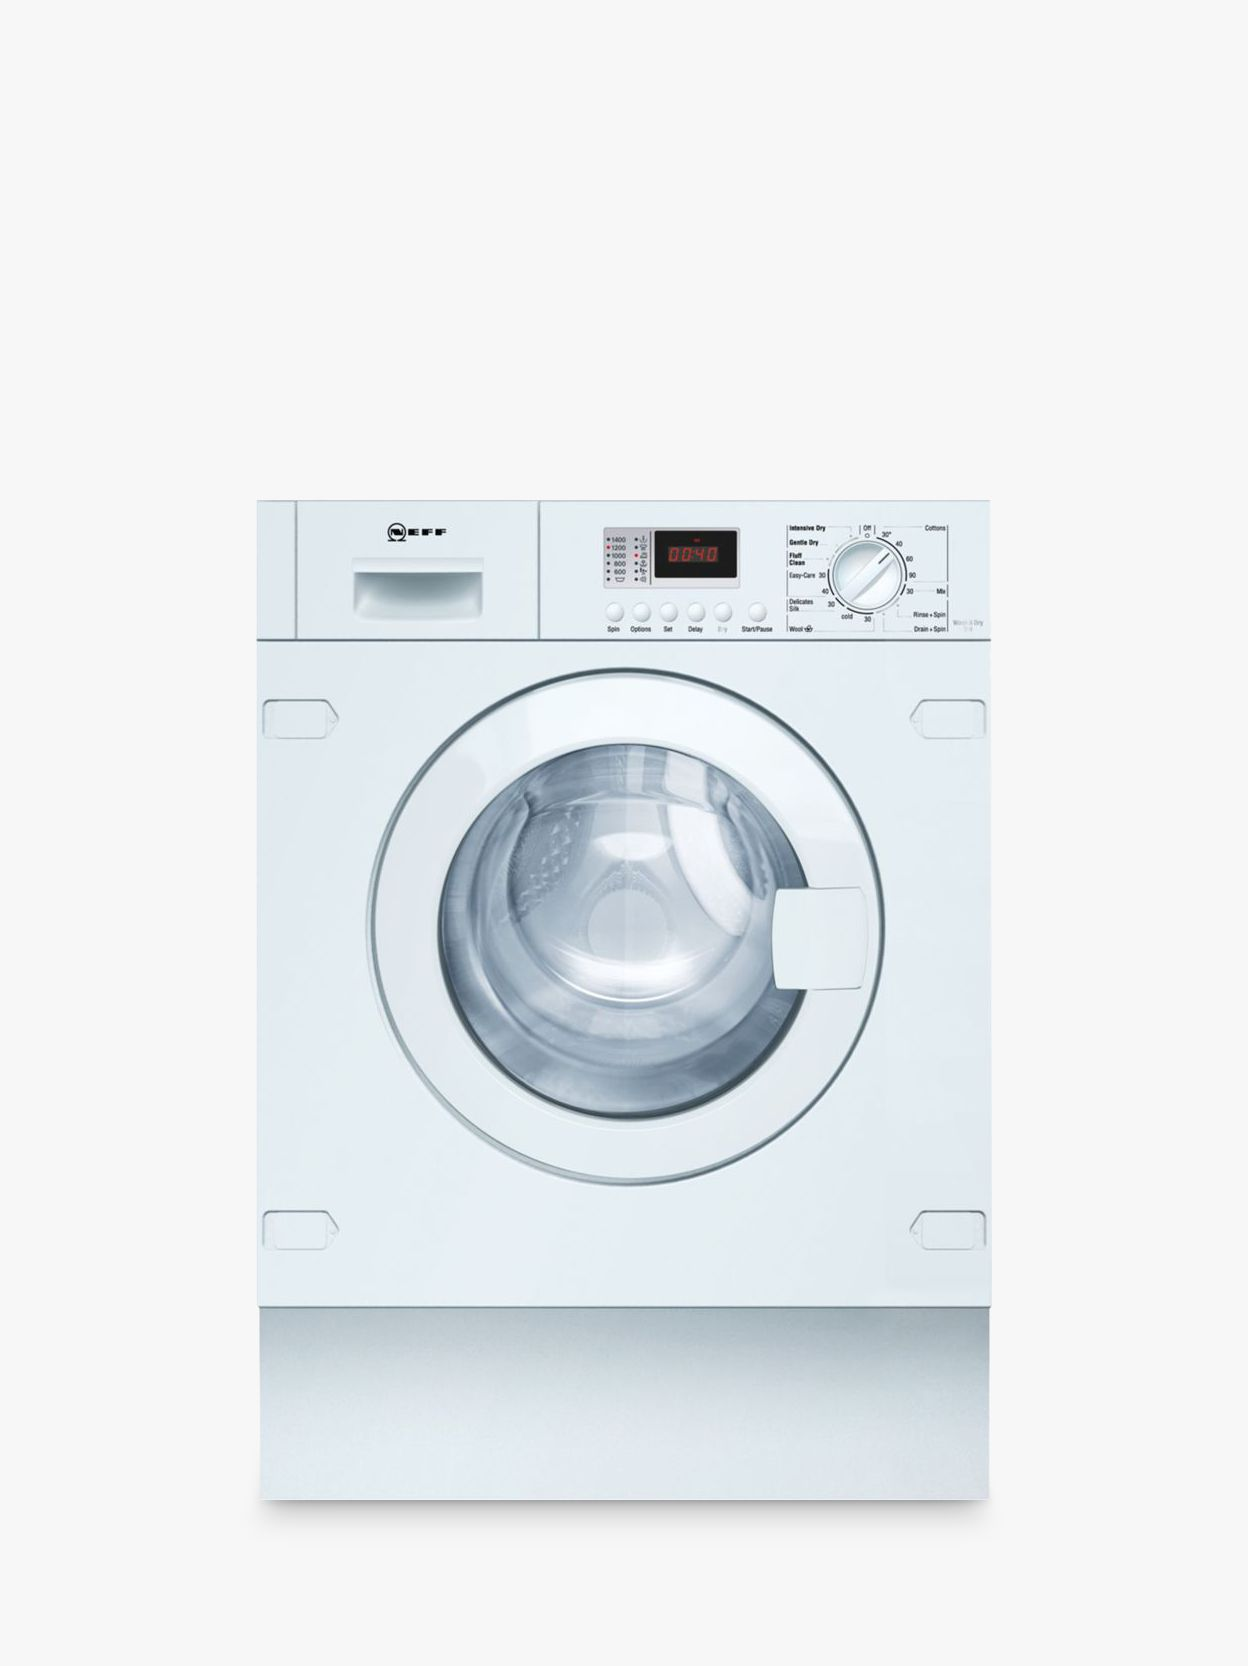 NEFF Neff V6320X1GB Integrated Washer Dryer, 7kg Wash/4kg Dry Load, B Energy Rating, 1400rpm Spin